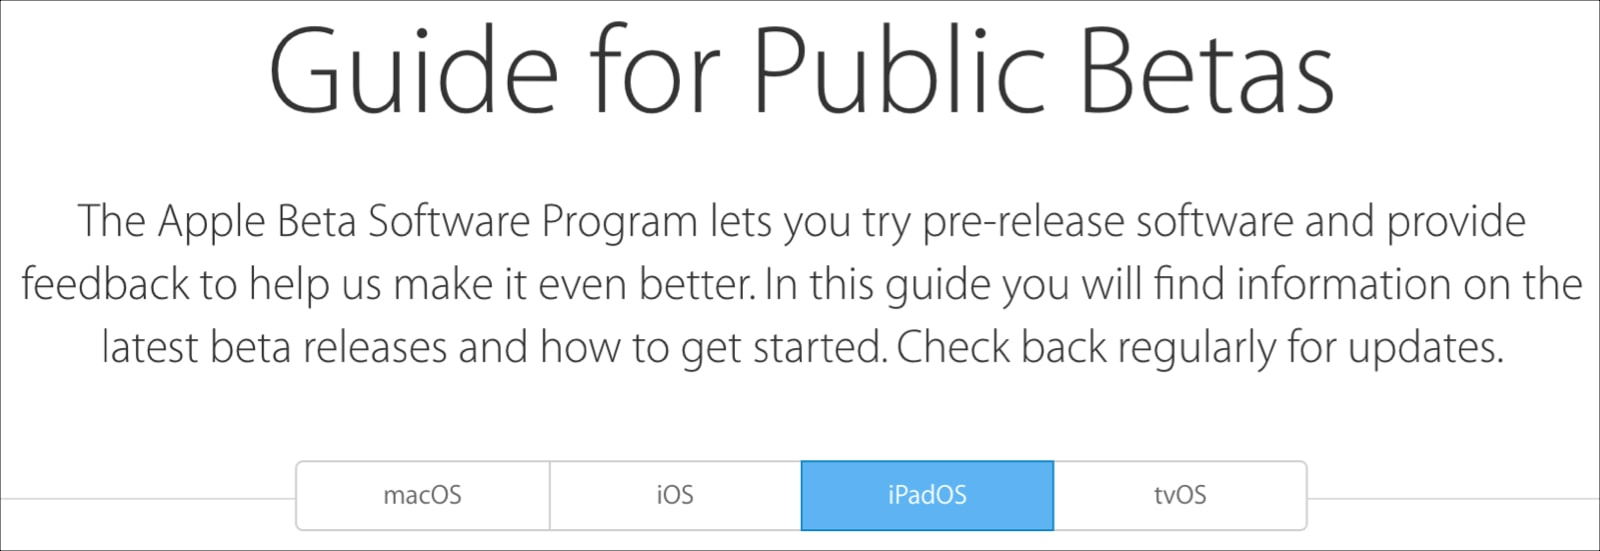 Apple-Guide-for-Public-Betas